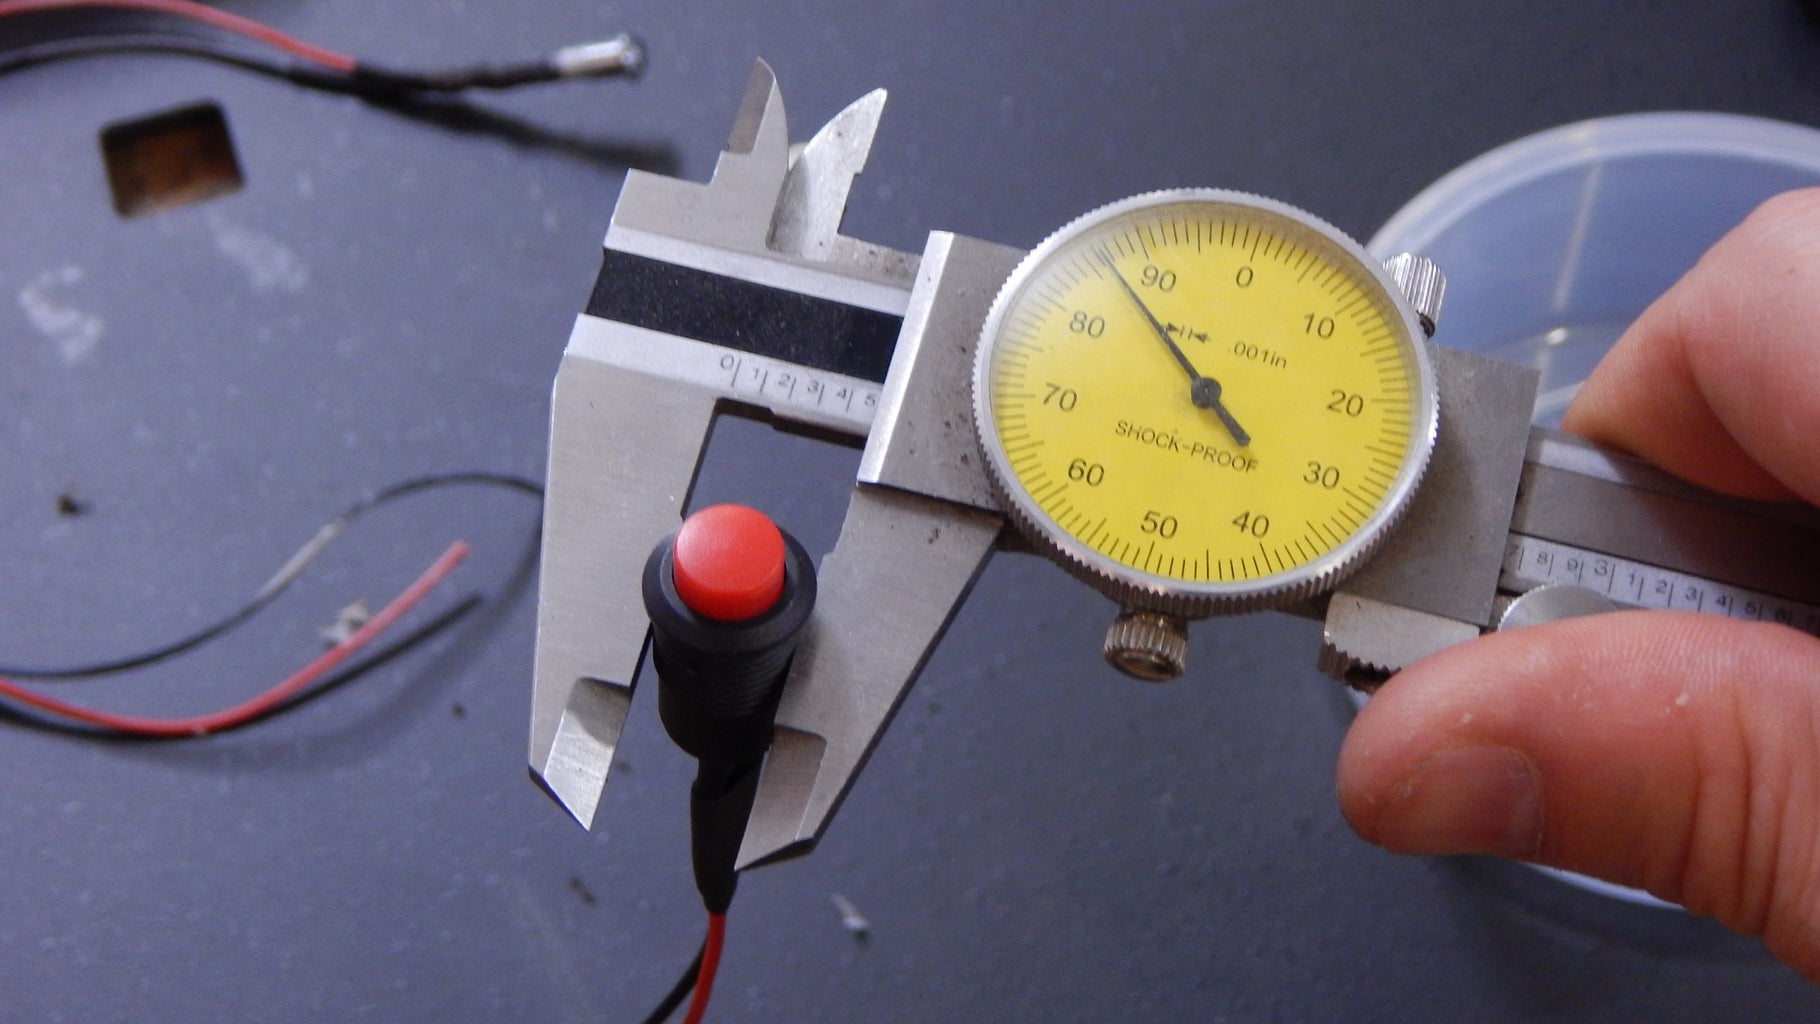 Modifying the Base for the Control Components